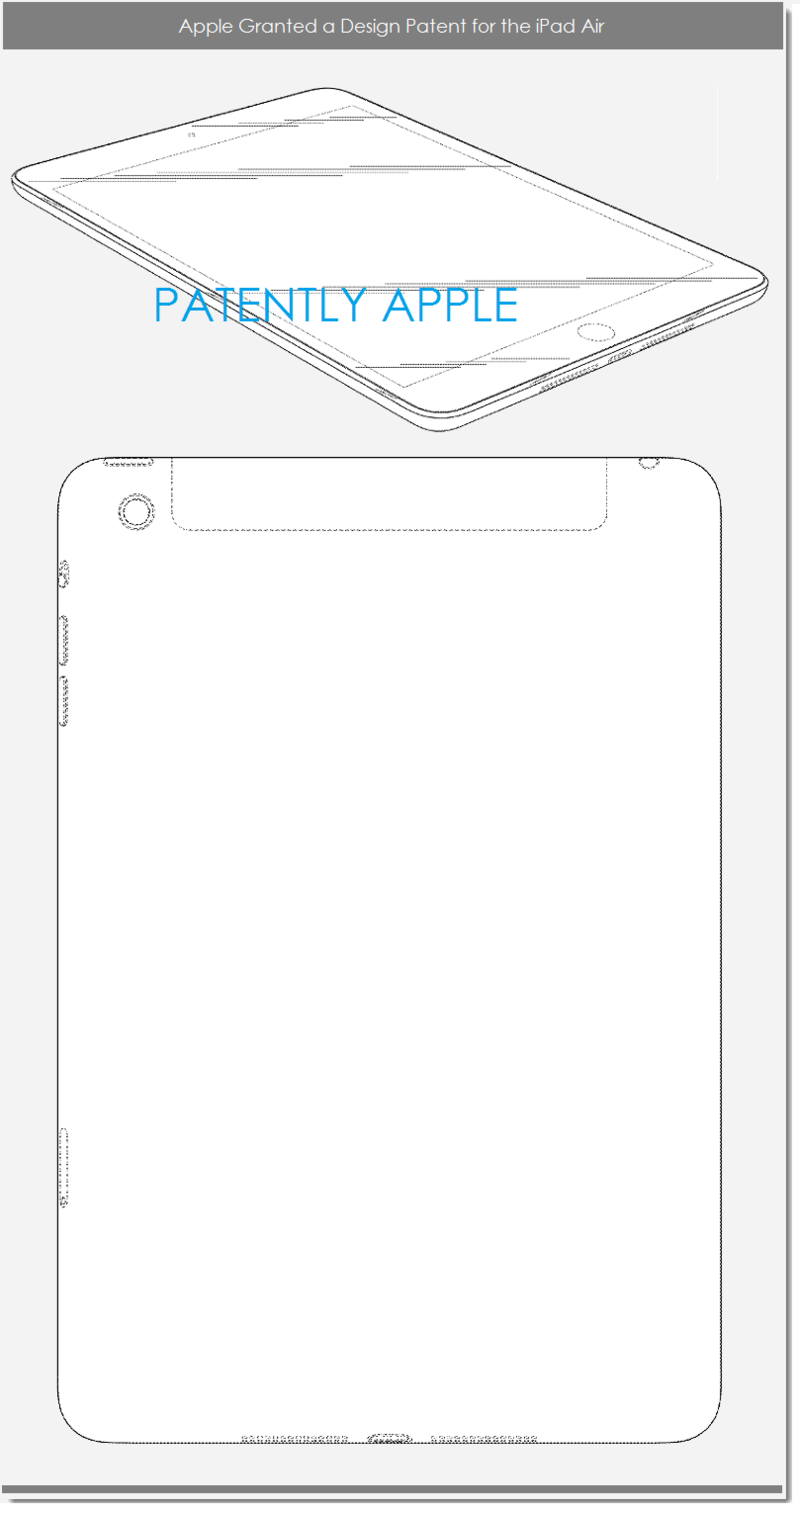 5AF - APPLE IPAD AIR DESIGN PATENT